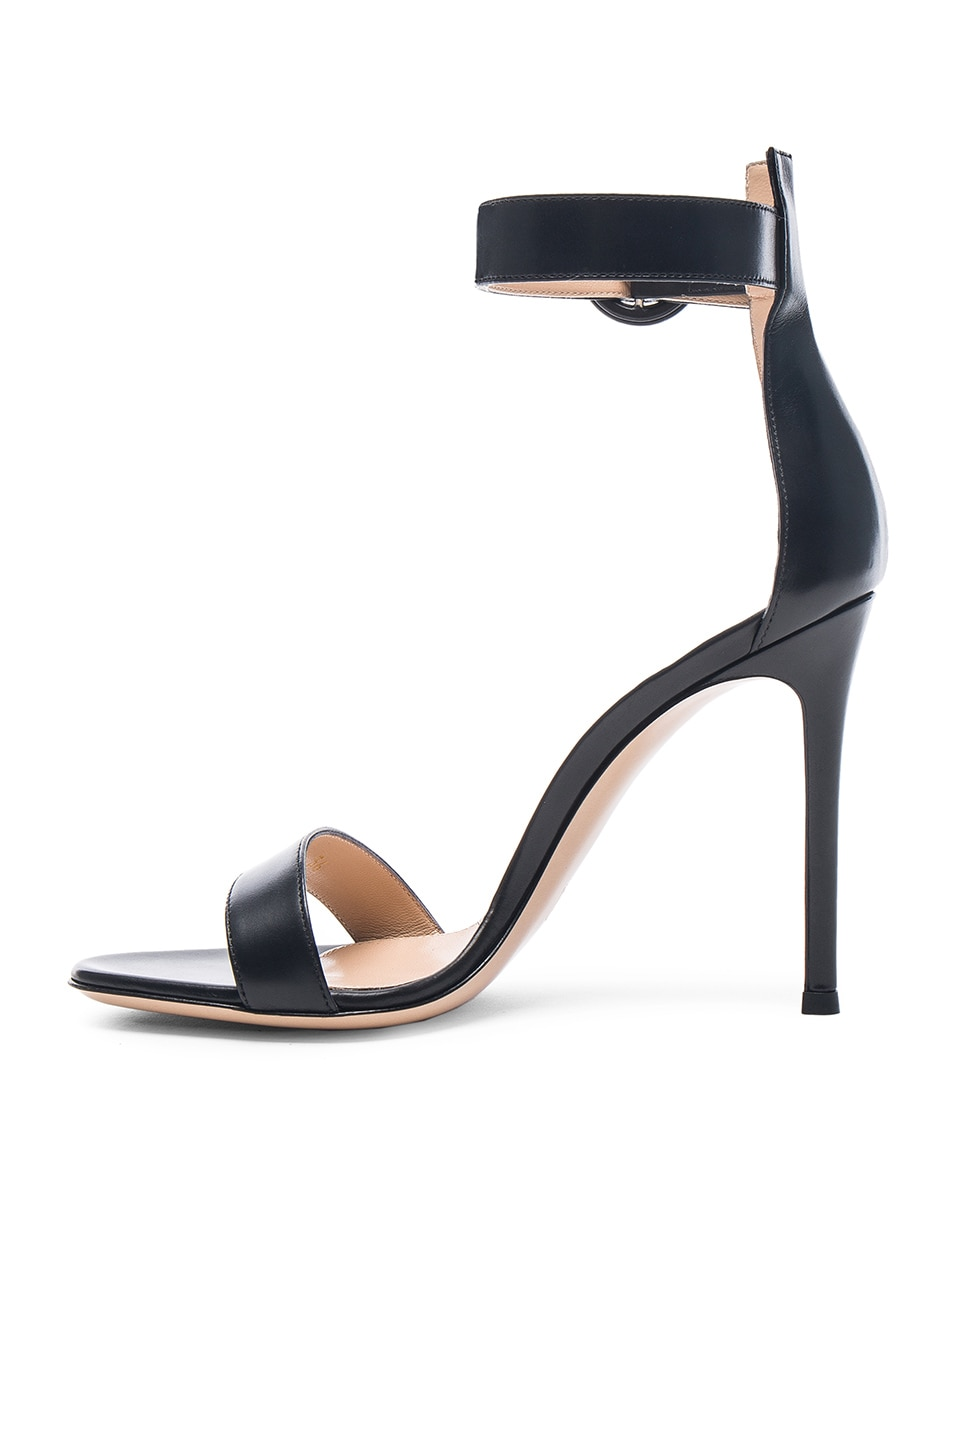 Image 5 of Gianvito Rossi Leather Portofino Heels in Black